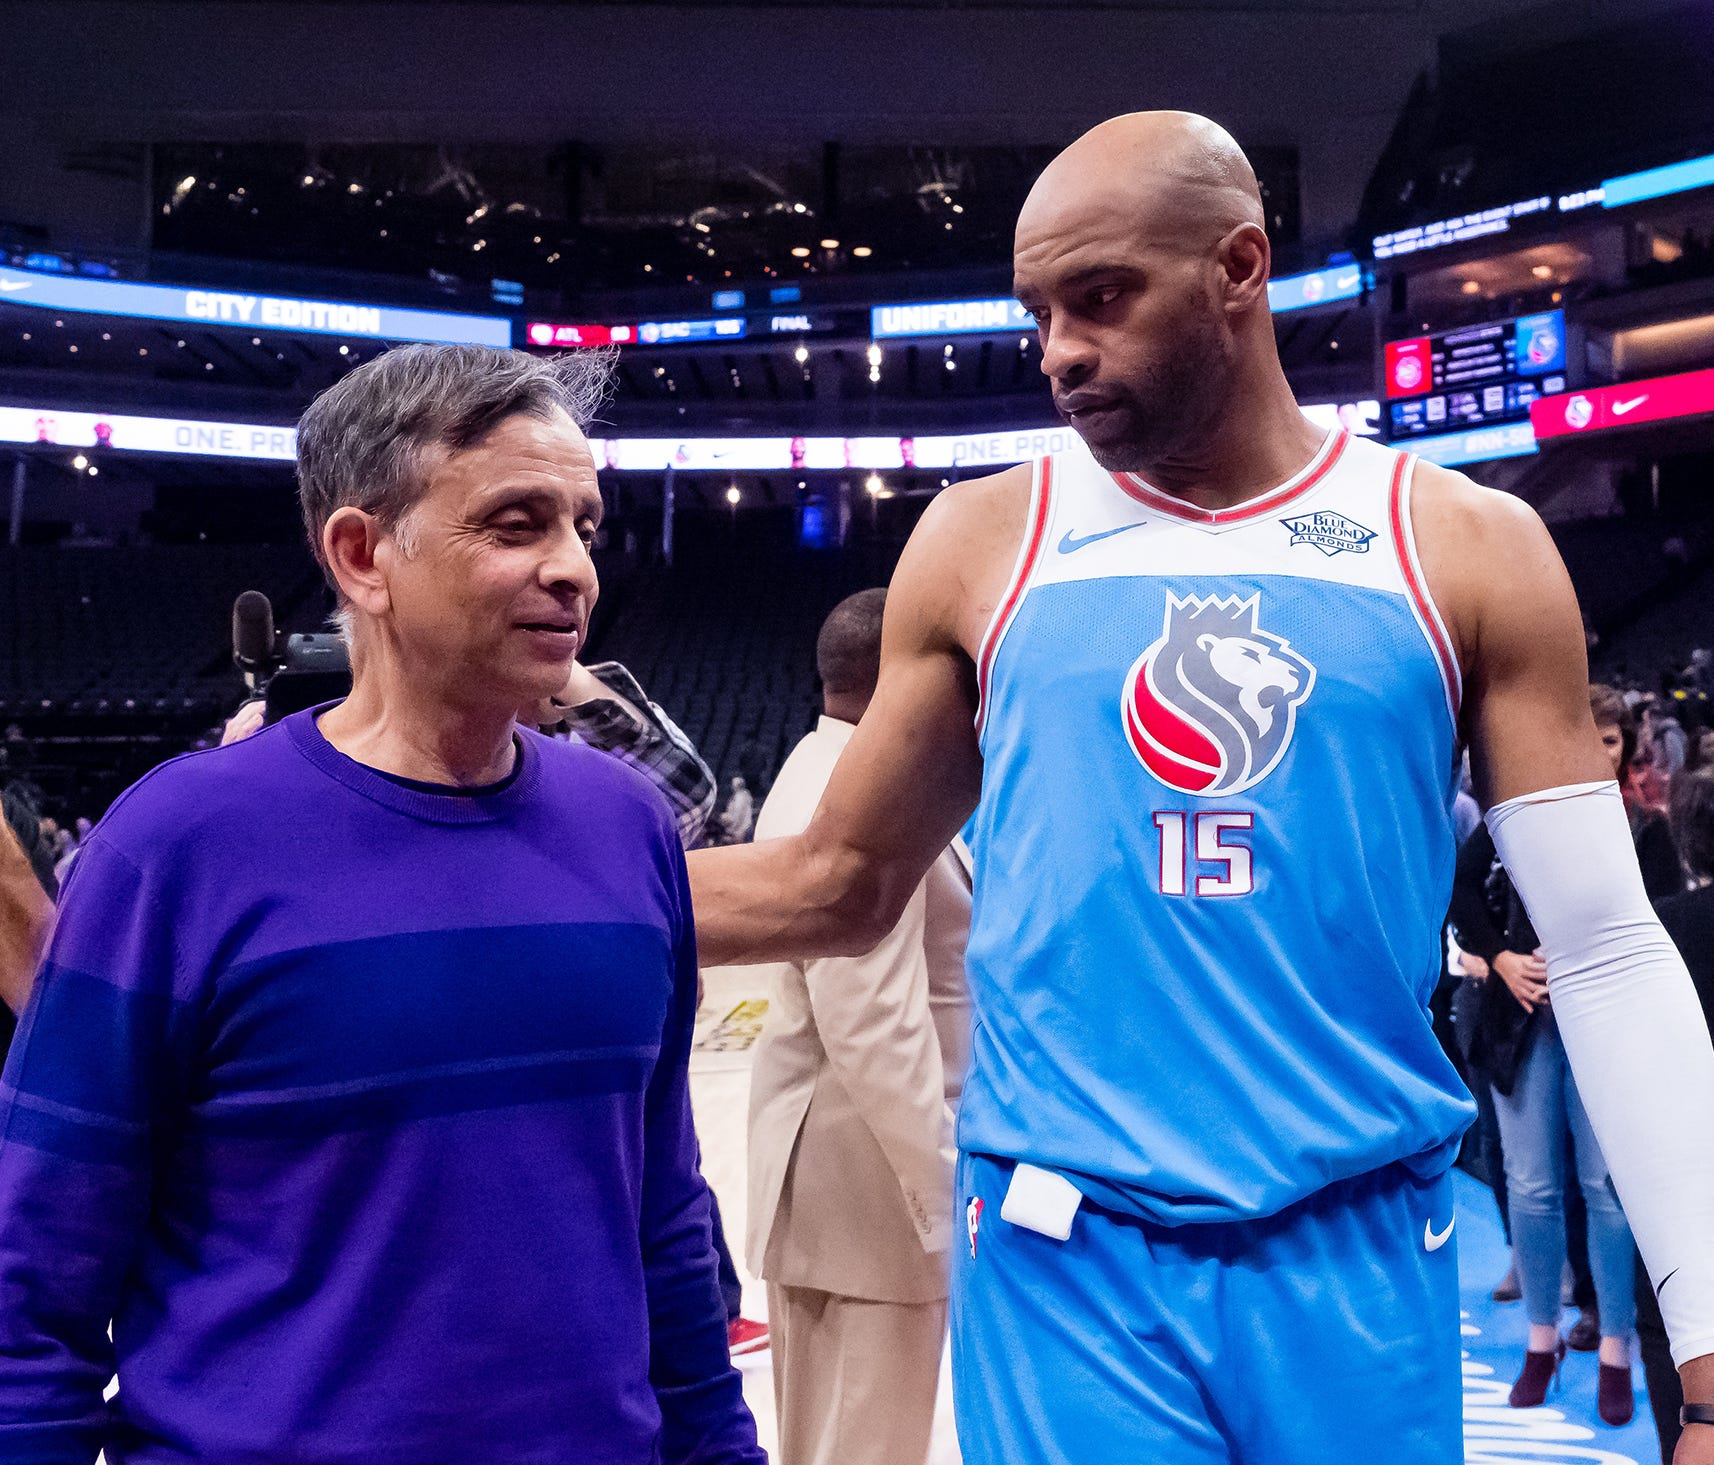 Kings majority owner Vivek Ranadive with Vince Carter after the game.